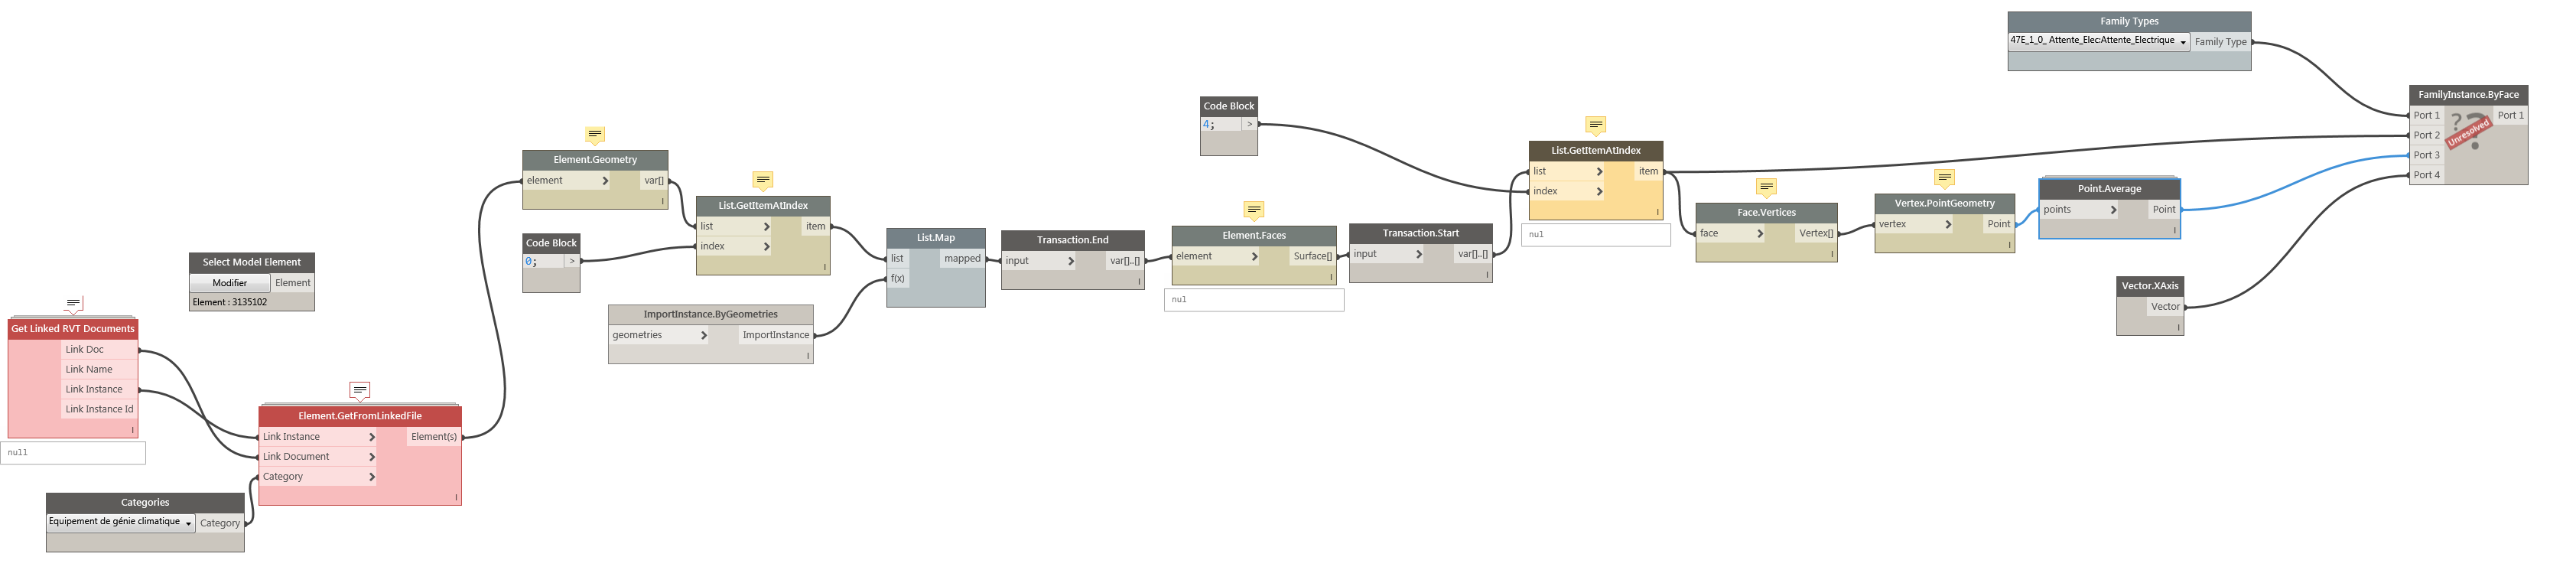 Place family on family (linked file) - Revit - Dynamo